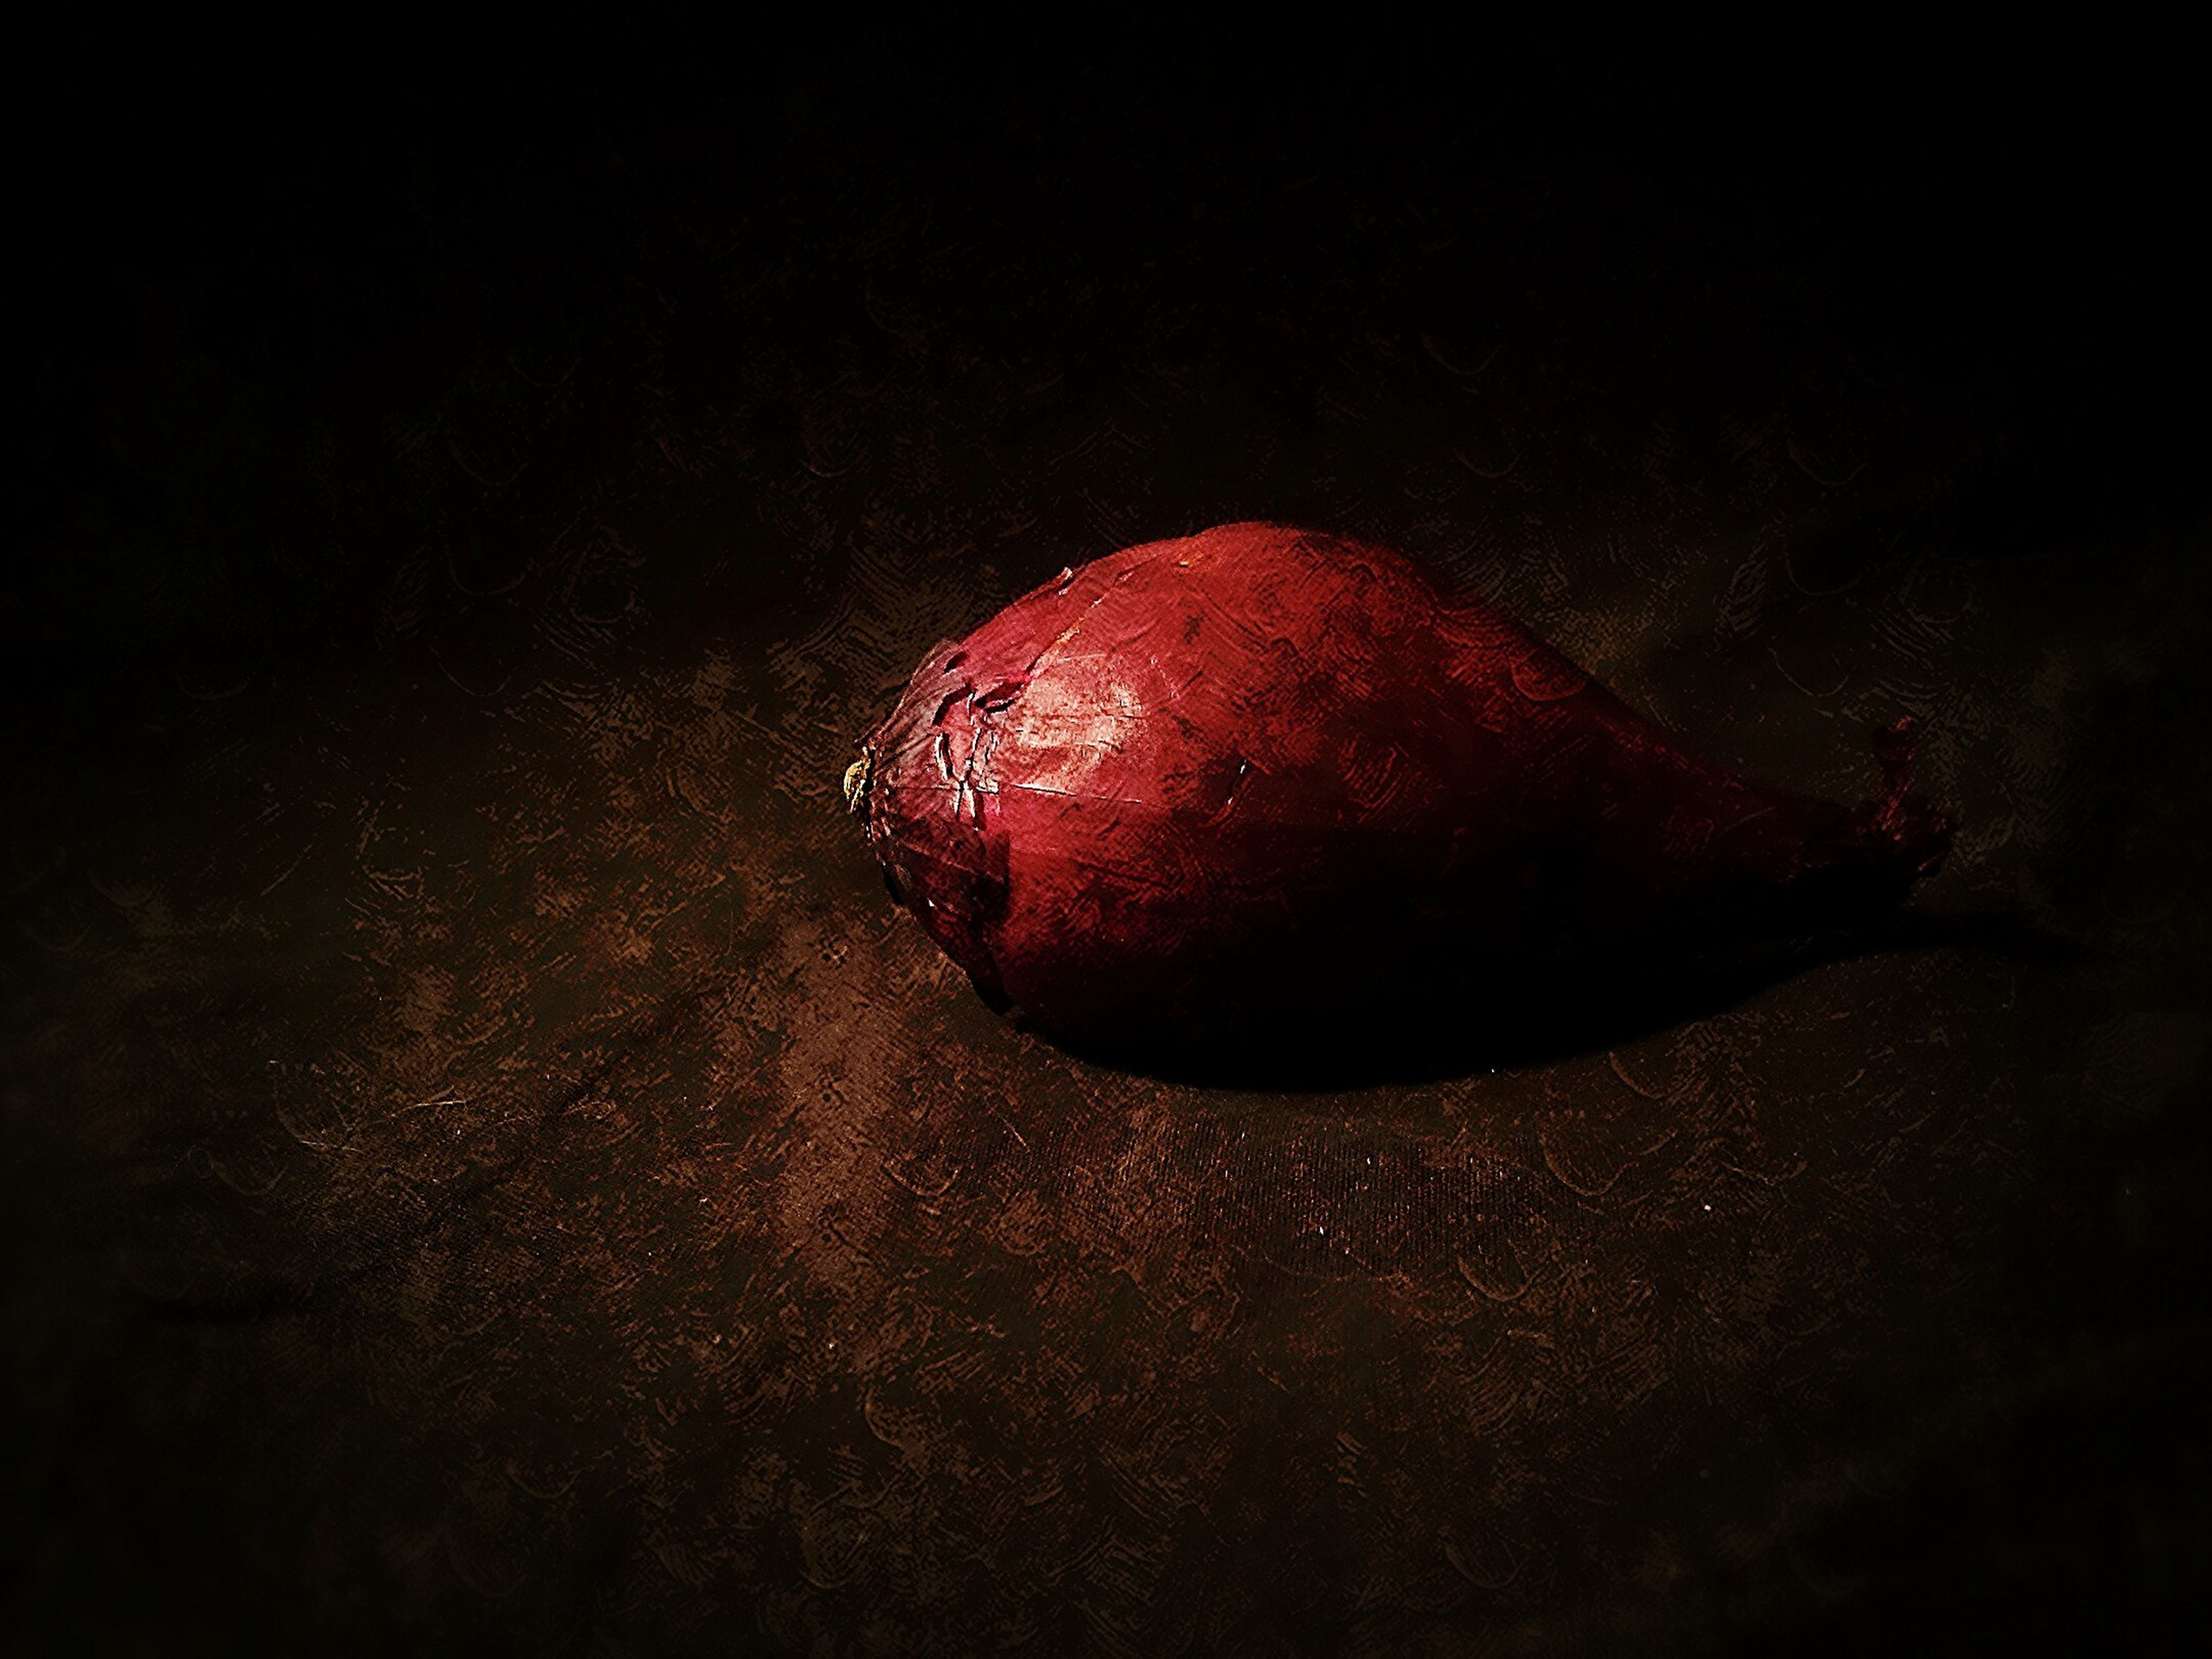 red, food and drink, fruit, food, still life, close-up, freshness, healthy eating, high angle view, no people, studio shot, copy space, single object, indoors, vignette, wet, auto post production filter, selective focus, heart shape, nature